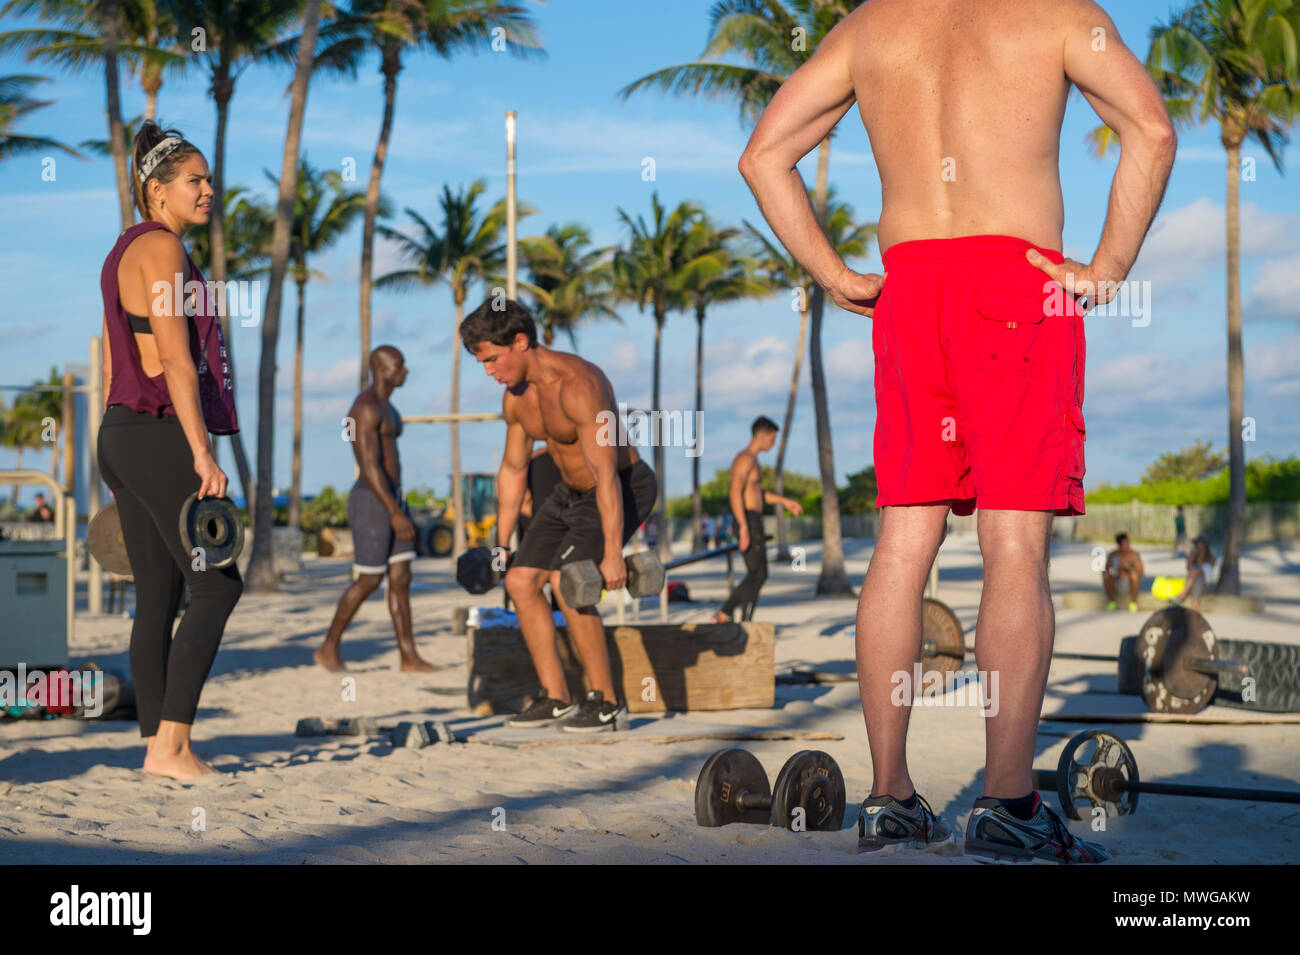 MIAMI - DECEMBER 29, 2017: Muscular young men work out in the outdoor gym known as Muscle Beach in Lummus Park. - Stock Image